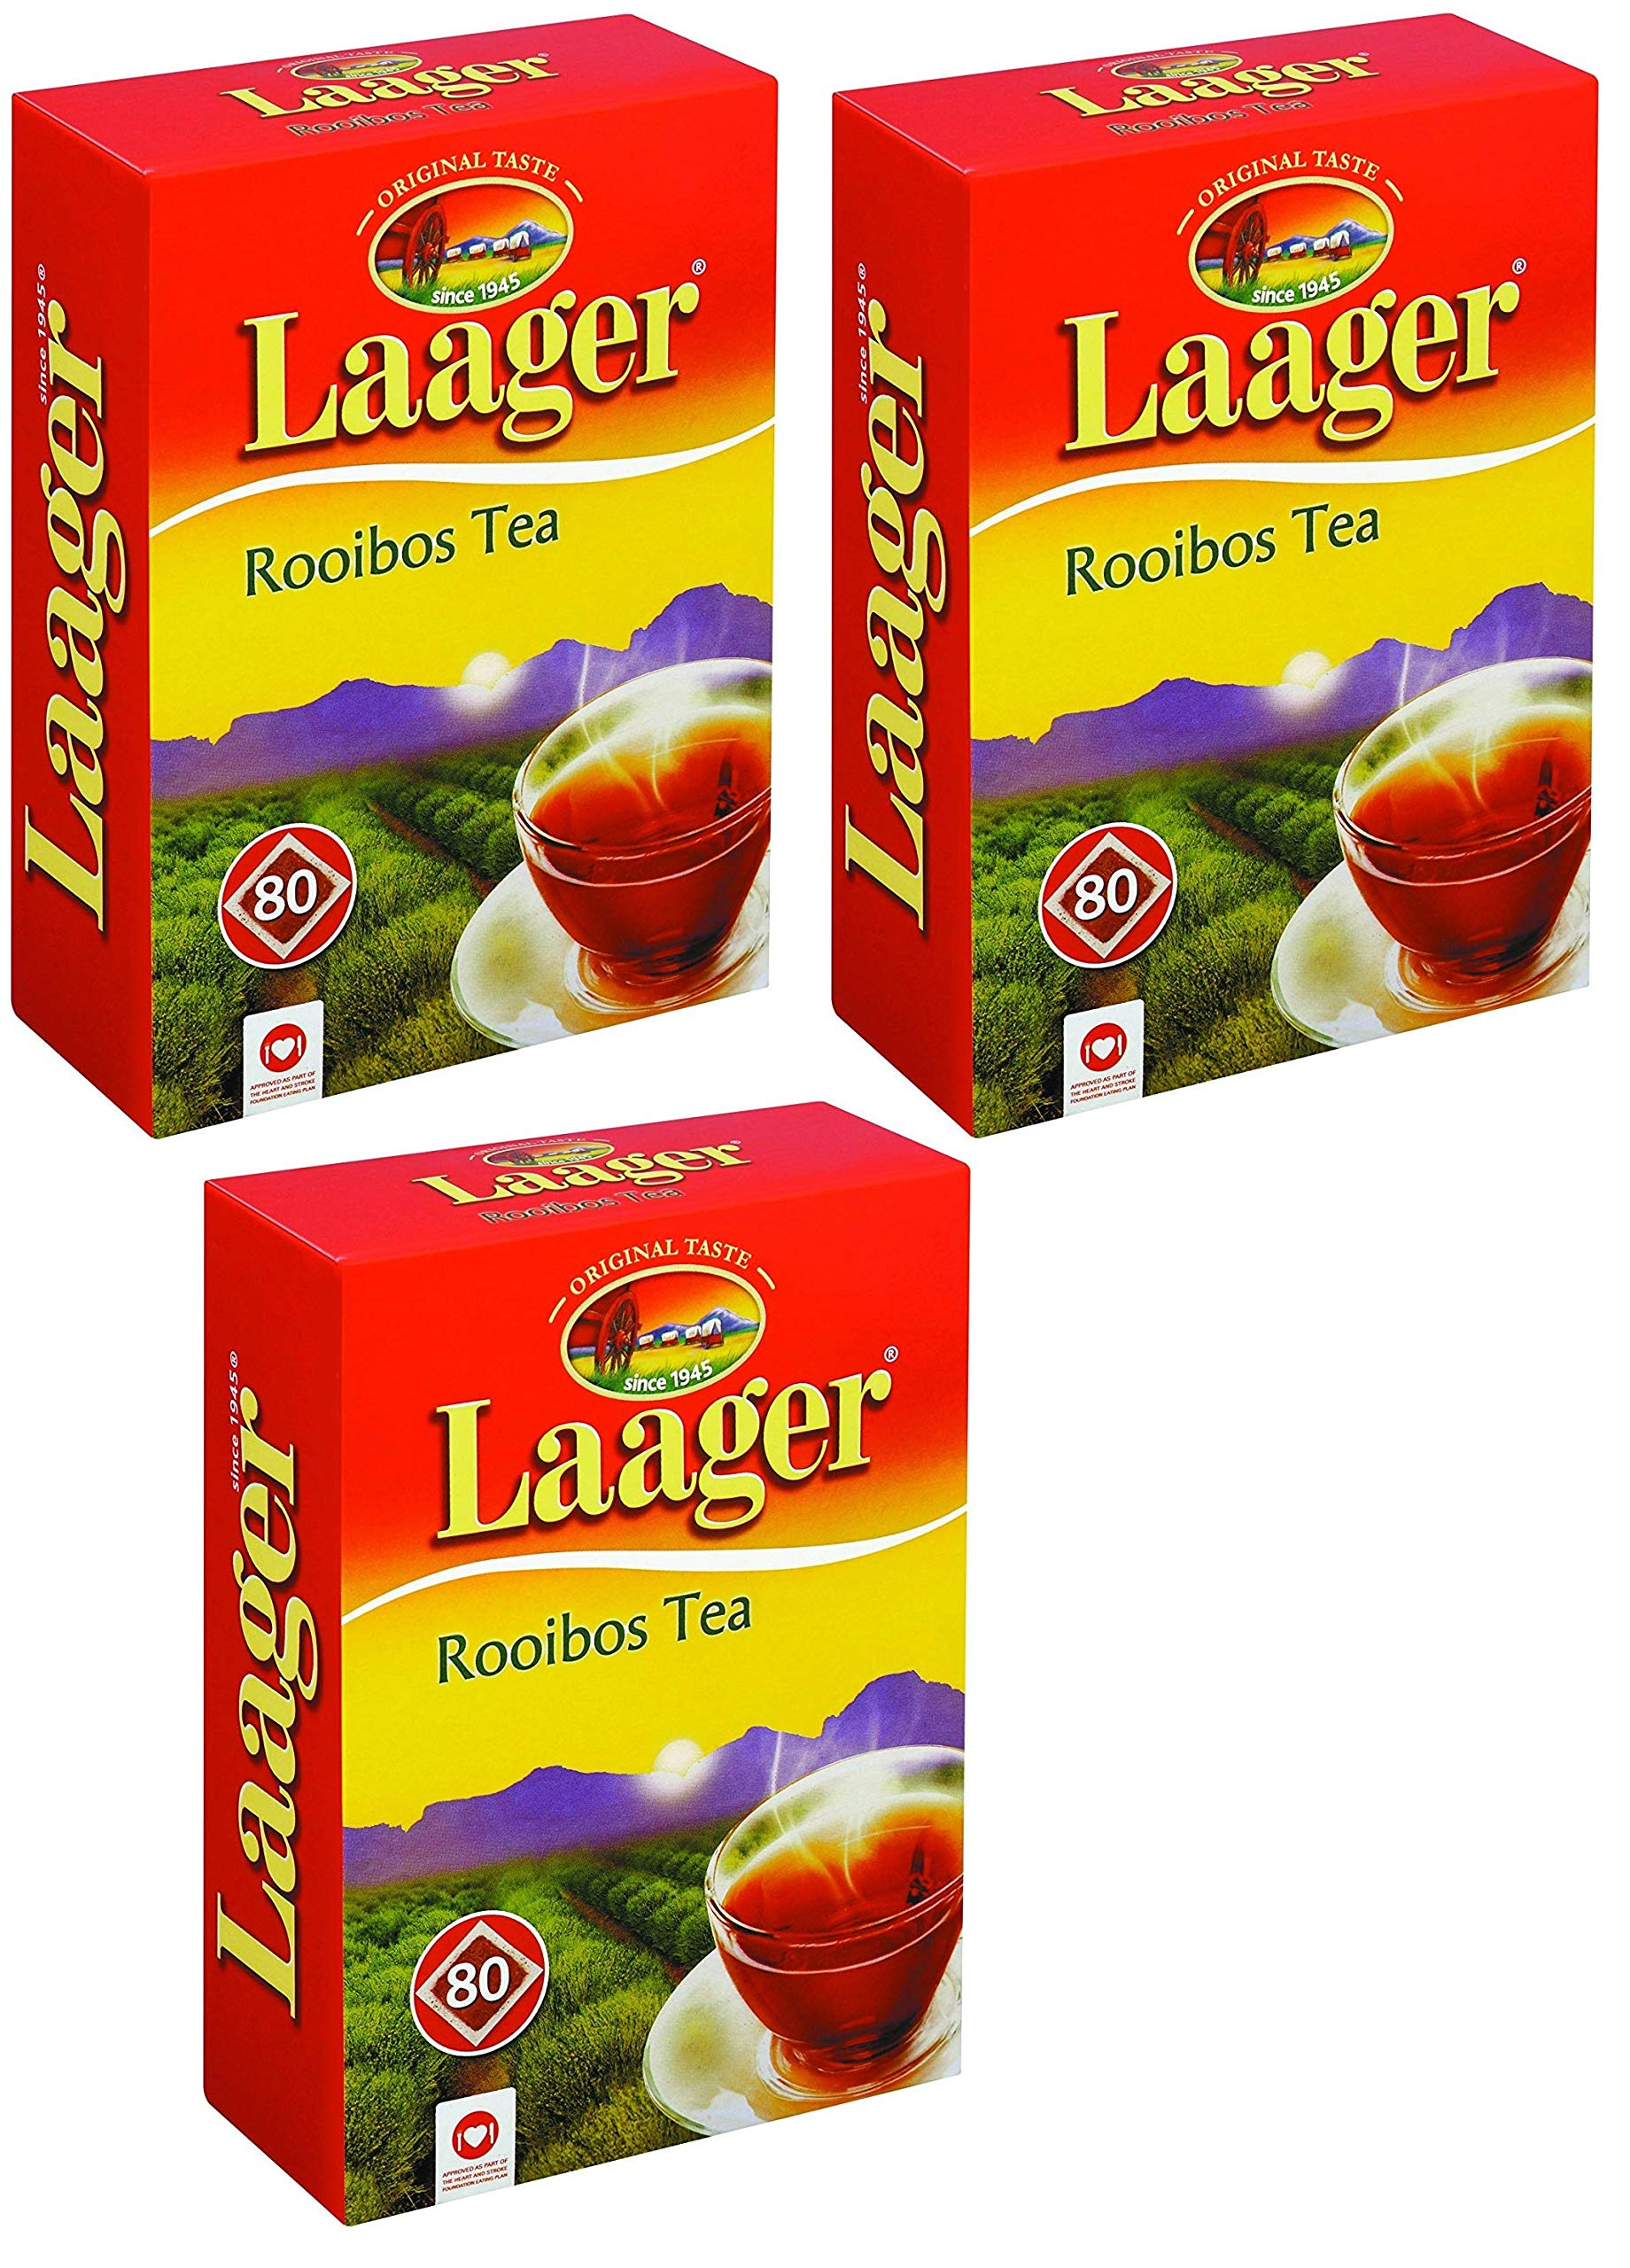 Laager South African Rooibos Tea - 80 count, 7 oz, 100% Natural Tea, Caffeine Free, Healthy and Pure, Red Bush Herbal Tea. Rich in Vitamins and Antioxidant (240 Count (Pack of 3))